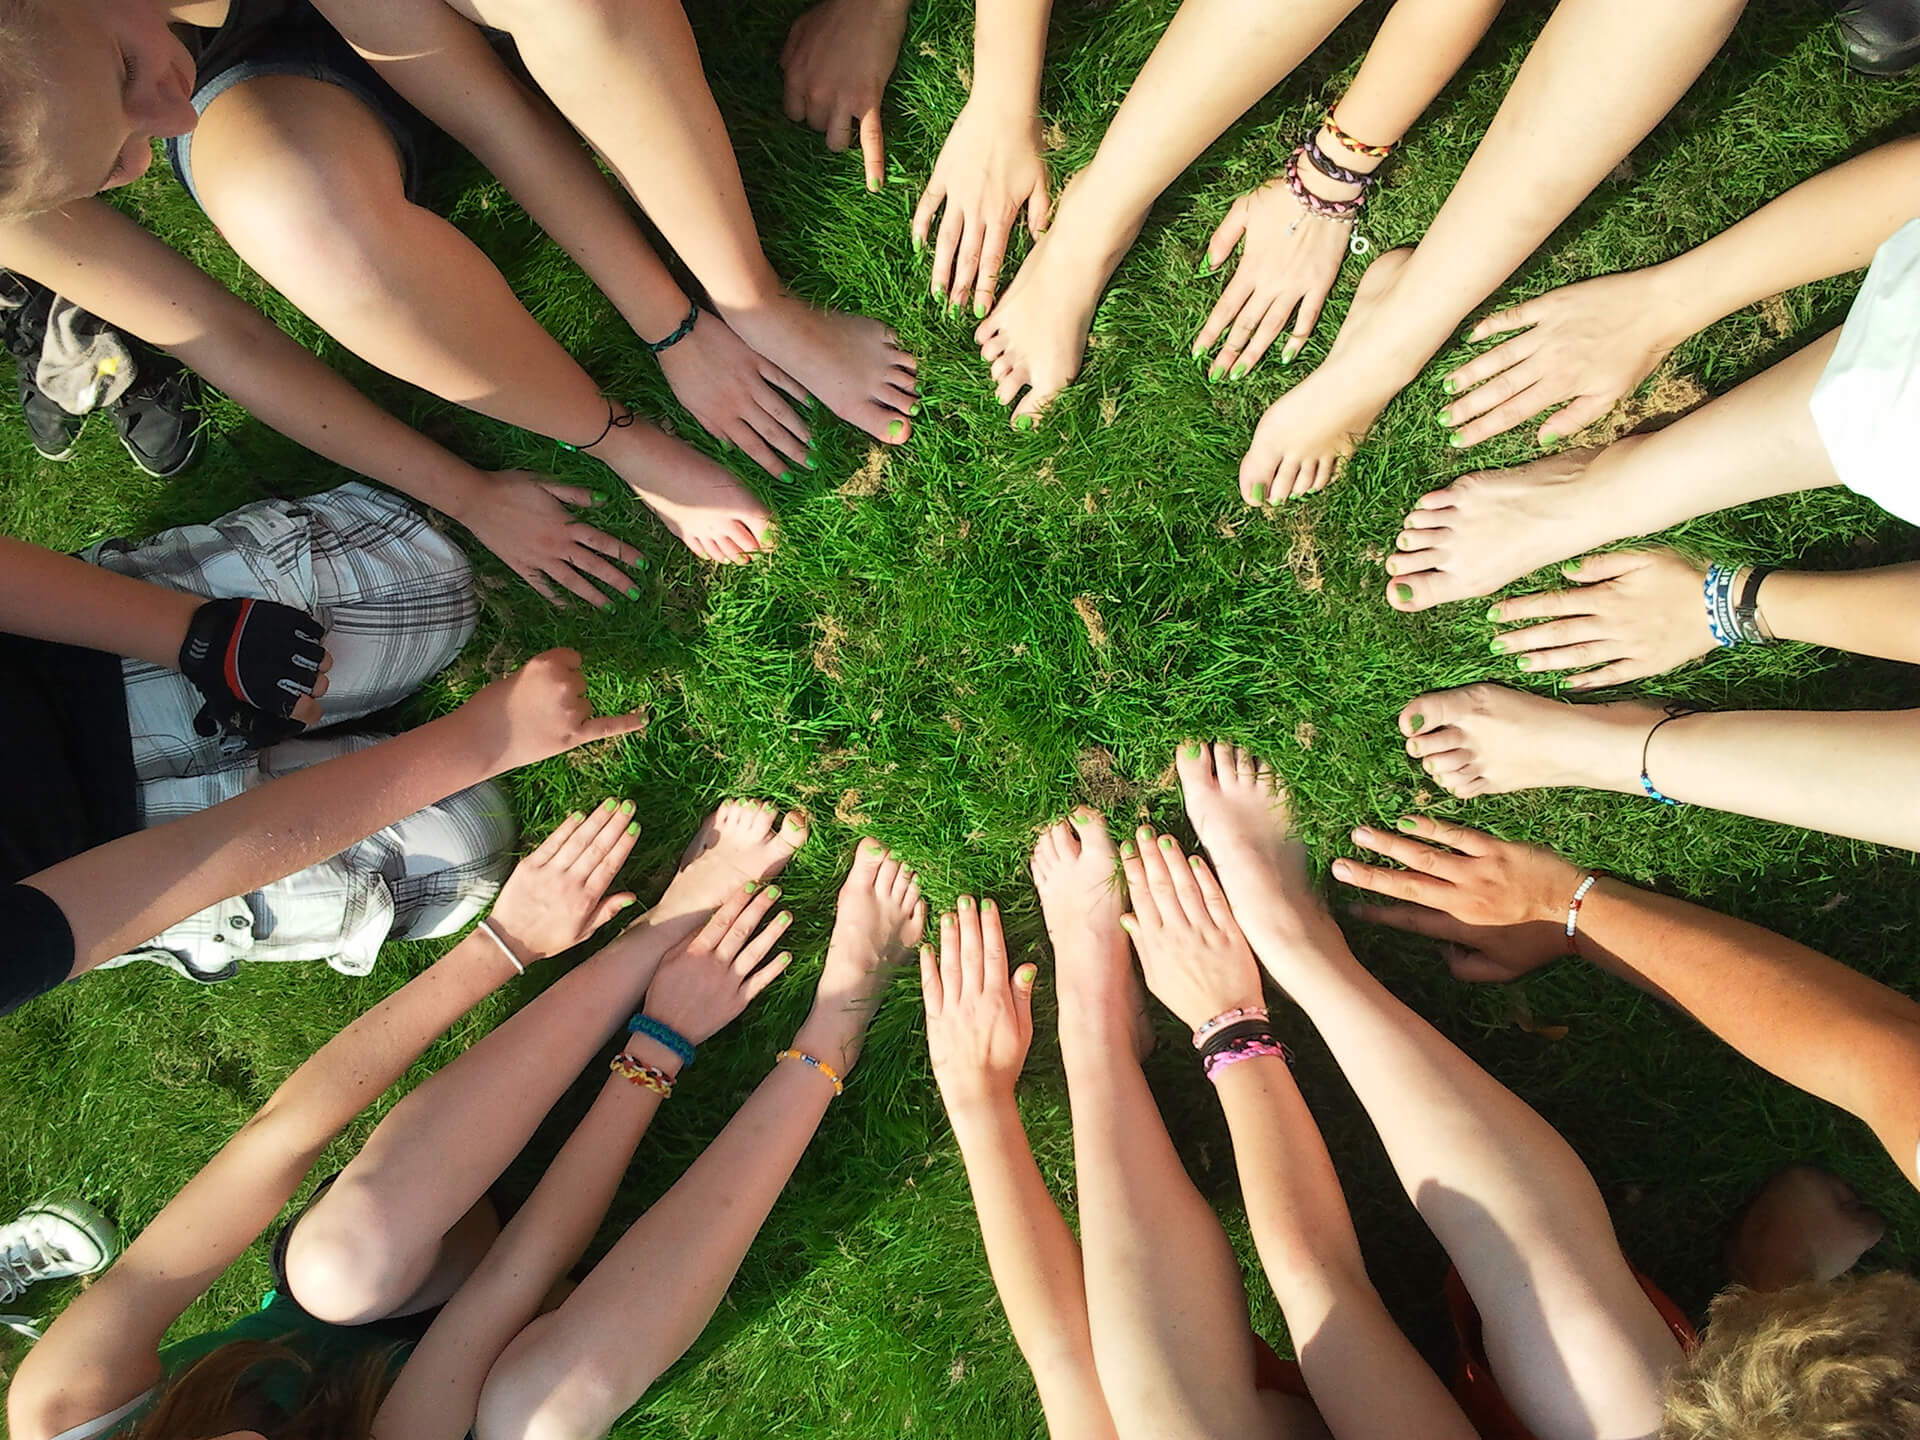 Top down view of various hands and bare feet with green nail varnish in a circle arrangement.